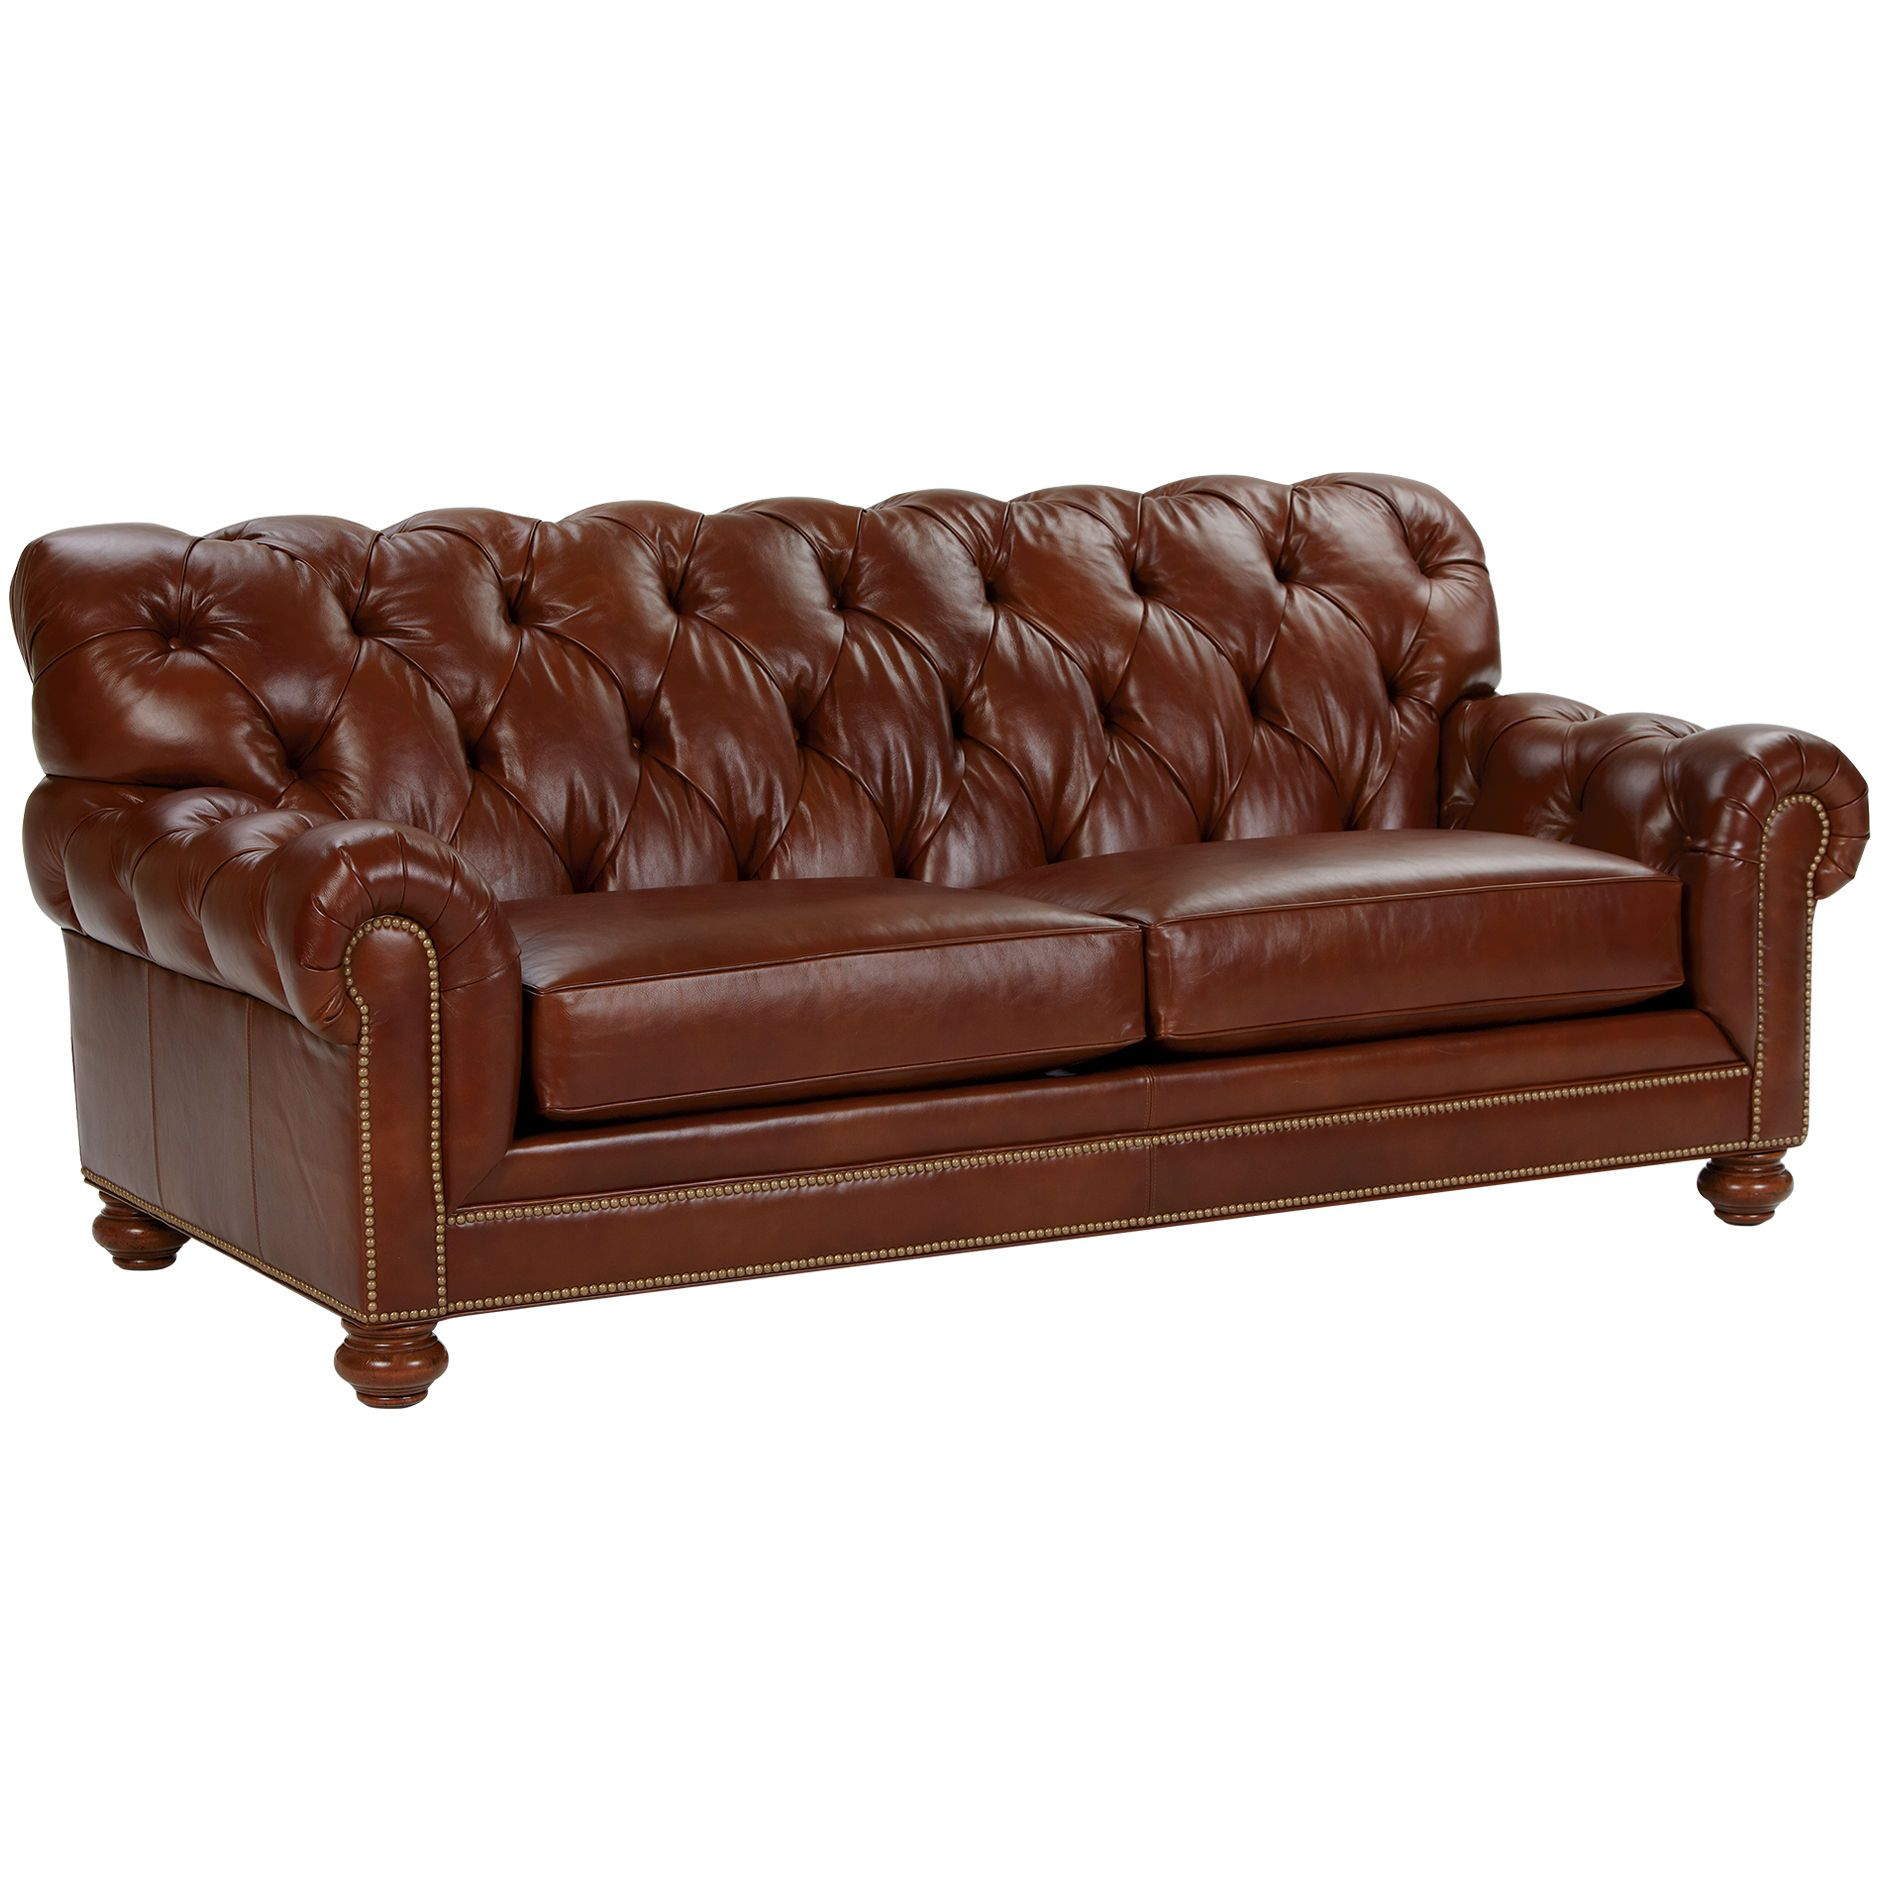 Ethan Allen Leather Couches Zef Jam